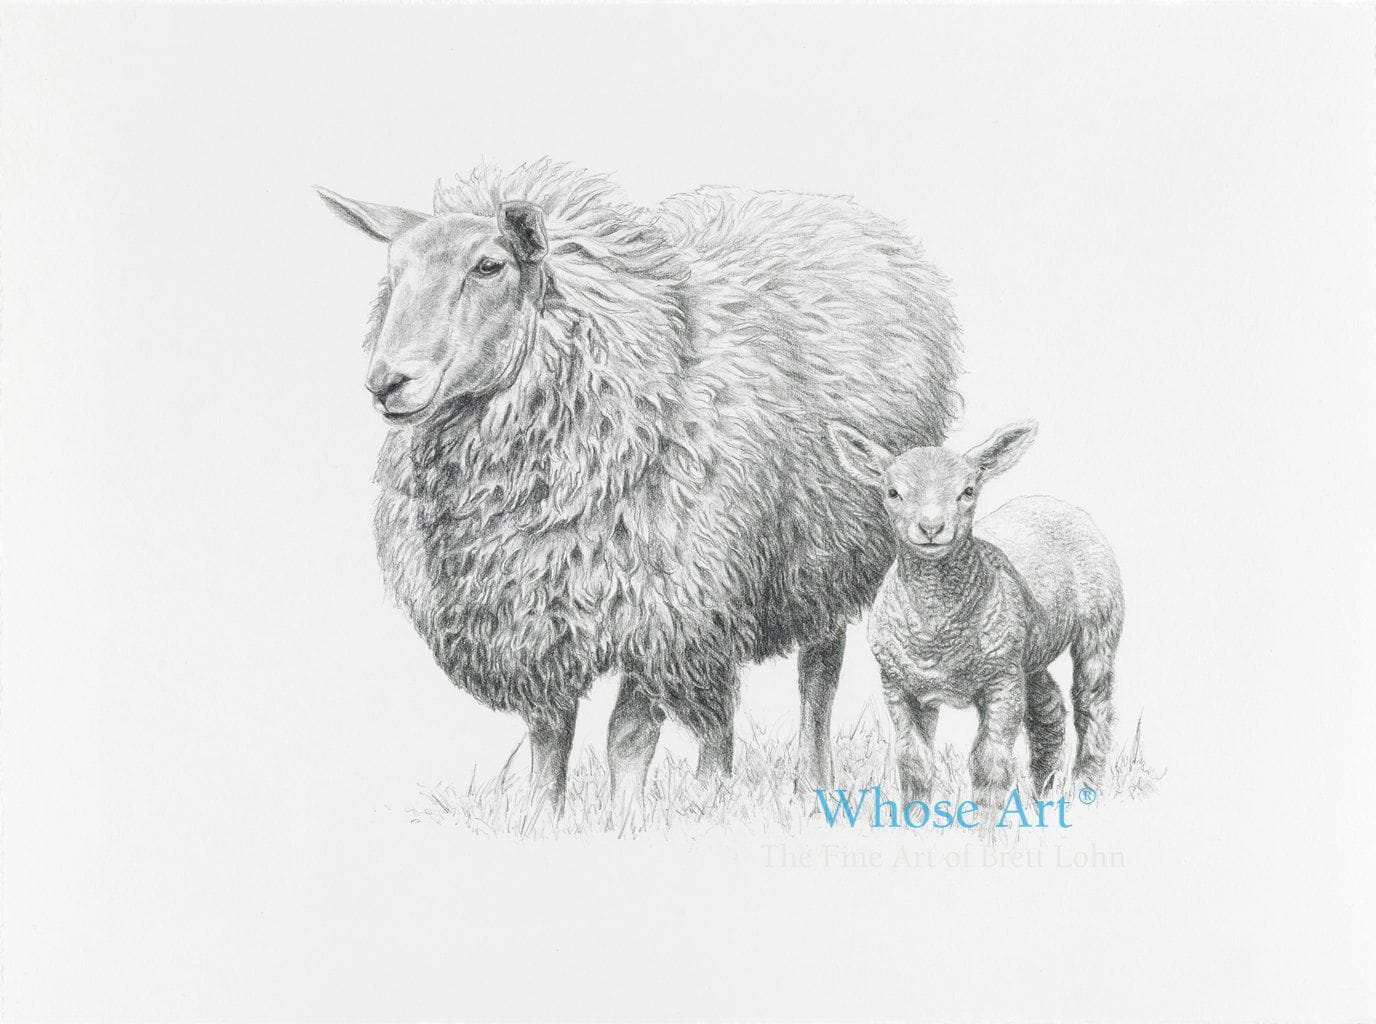 A sheep wall art drawing in pencil showing a lamb and sheep together in black and white.